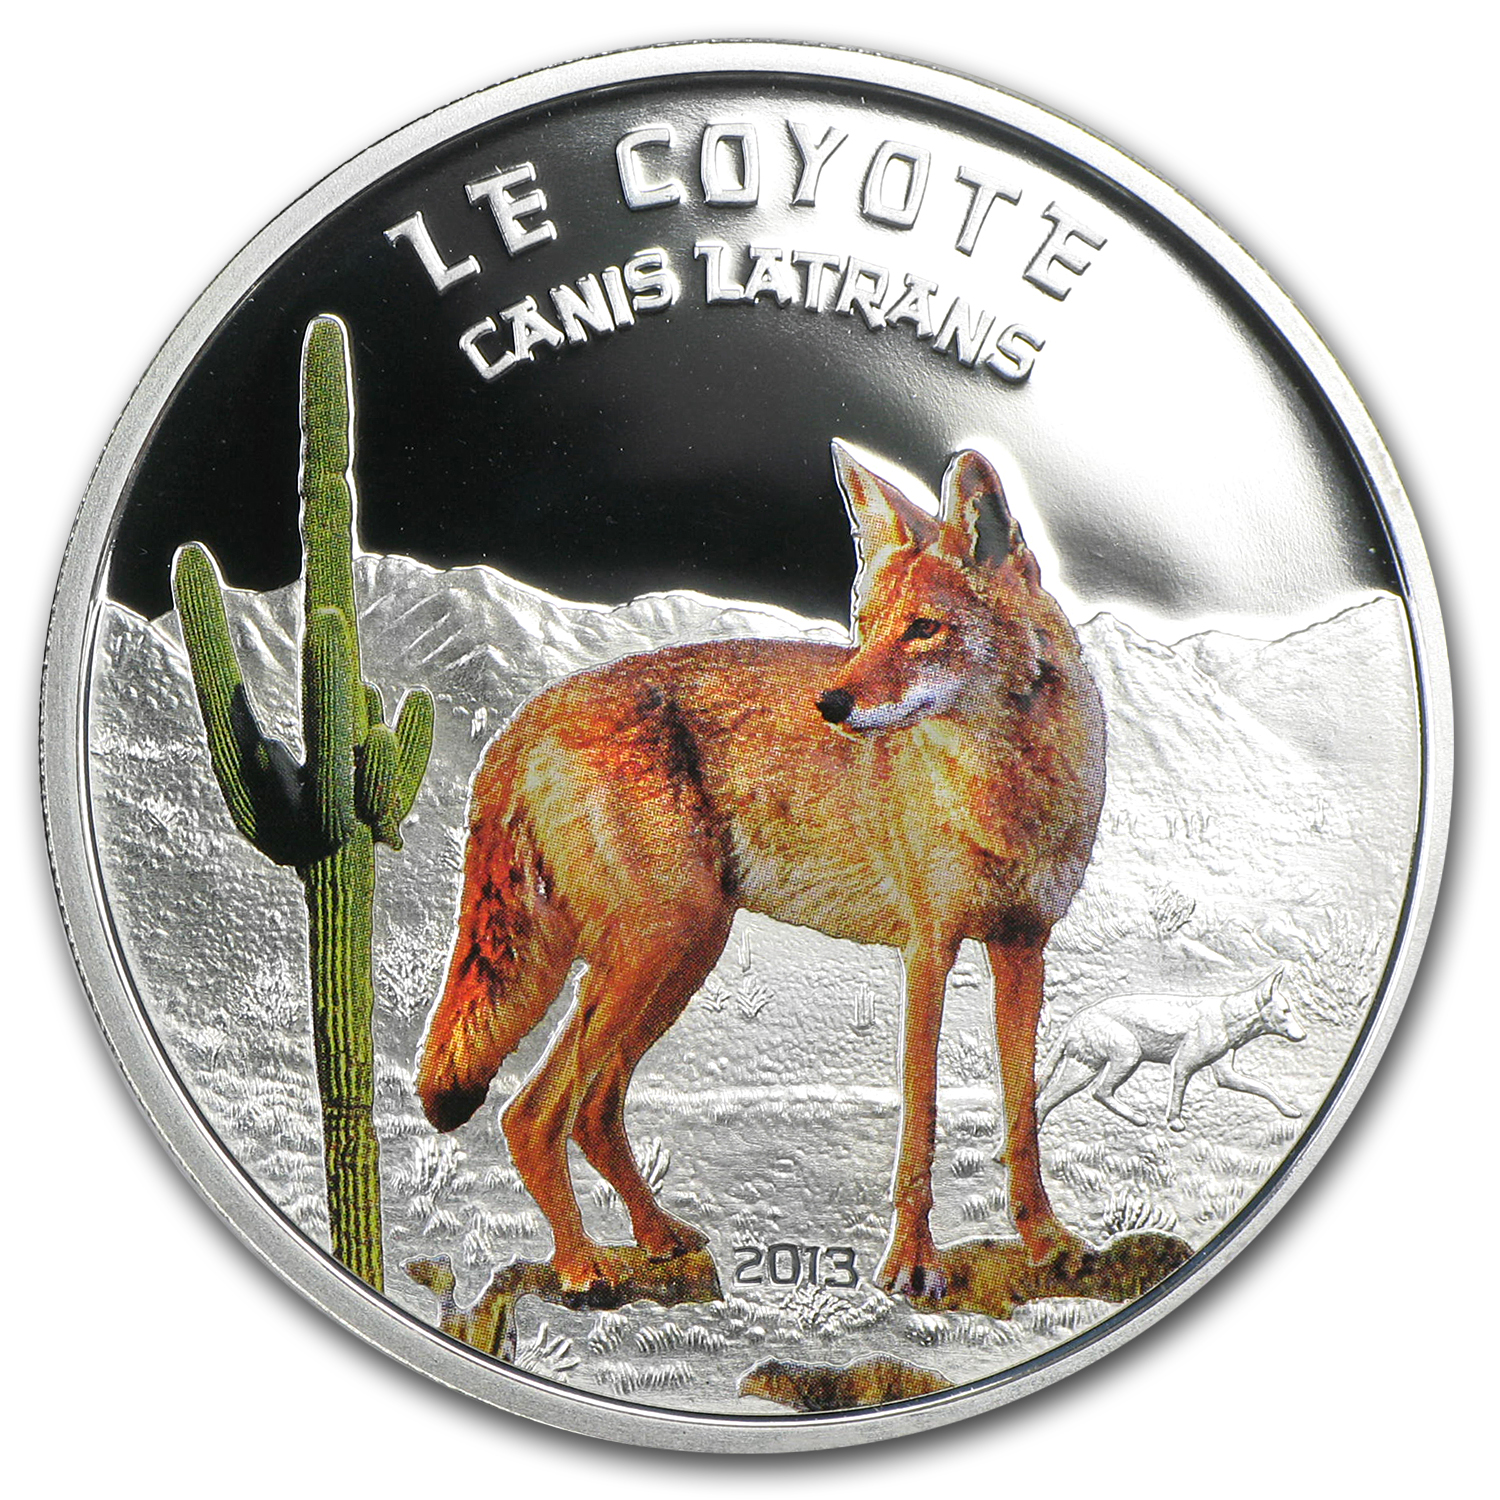 Niger 2013 Proof Silver Predator Hunters (Canis Latrans Coyote)